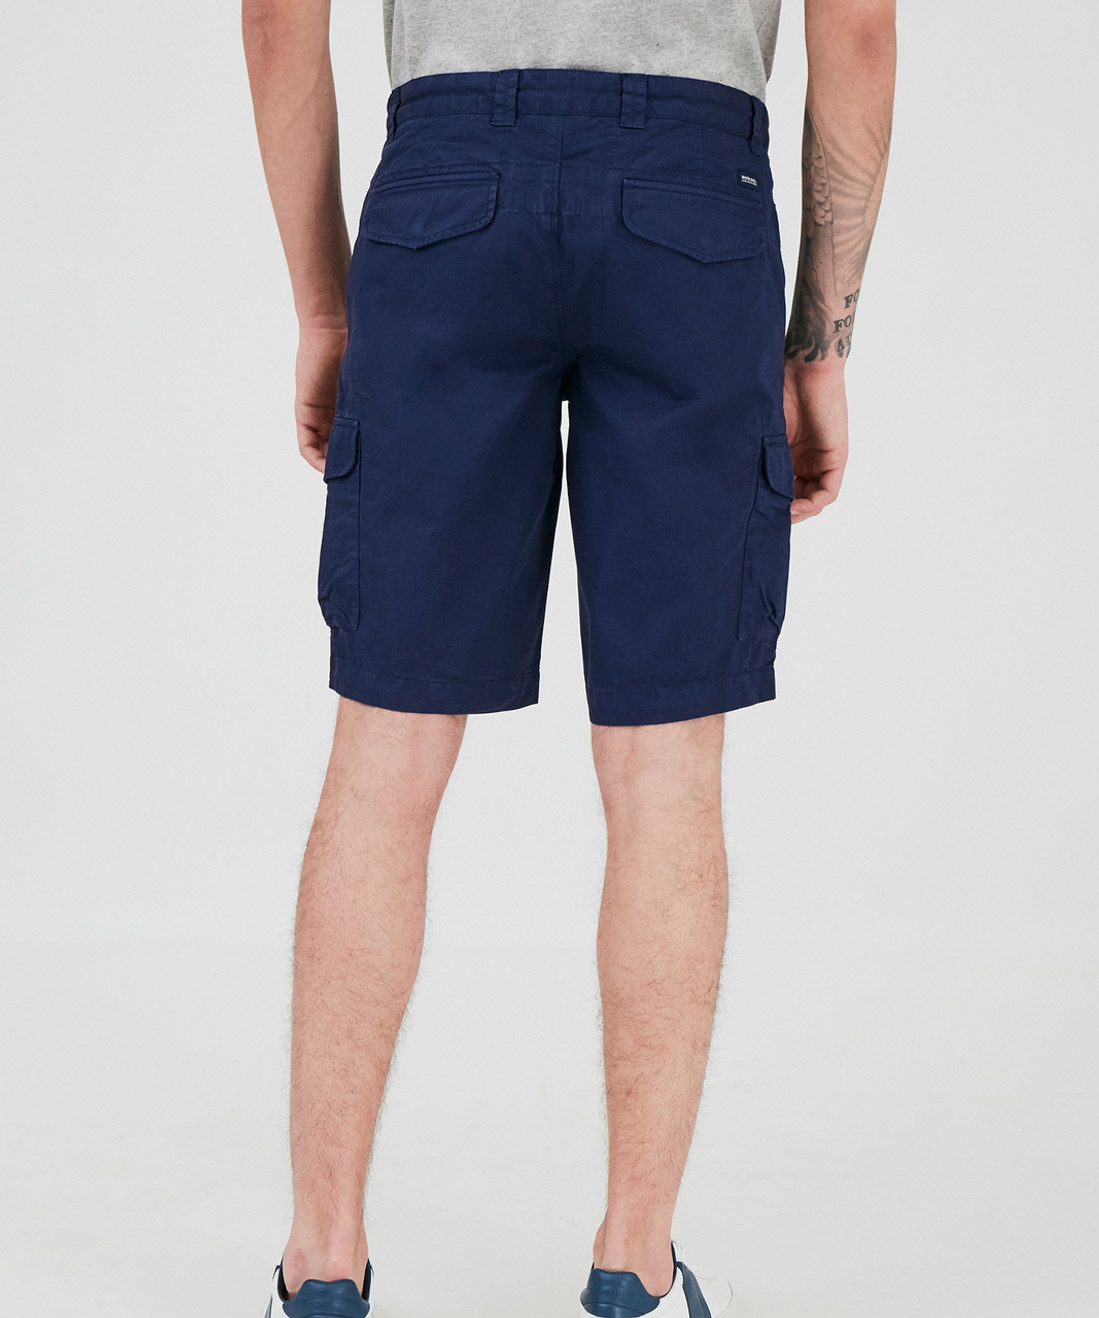 Men's Cargo Shorts - 100% Cotton - John Rich & Bros.